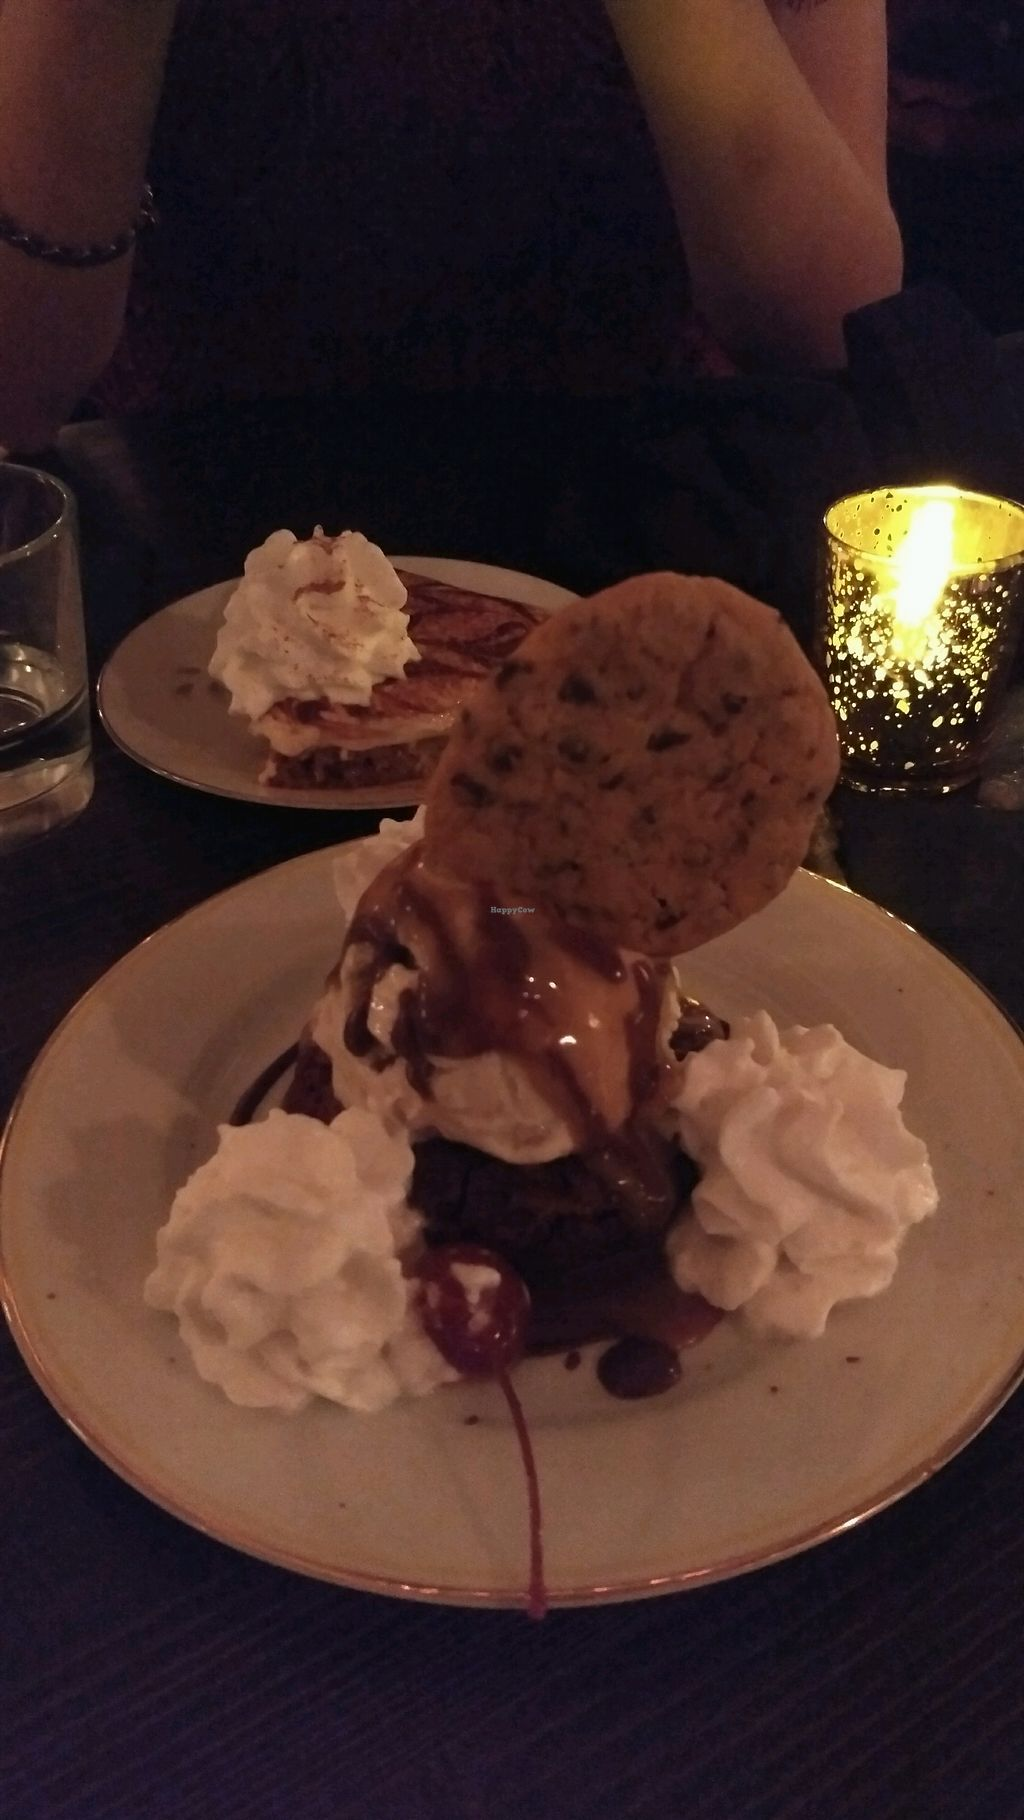 """Photo of Modern Love Brooklyn  by <a href=""""/members/profile/Cam"""">Cam</a> <br/>Brownie and tiramisu pie <br/> November 5, 2017  - <a href='/contact/abuse/image/79835/322089'>Report</a>"""